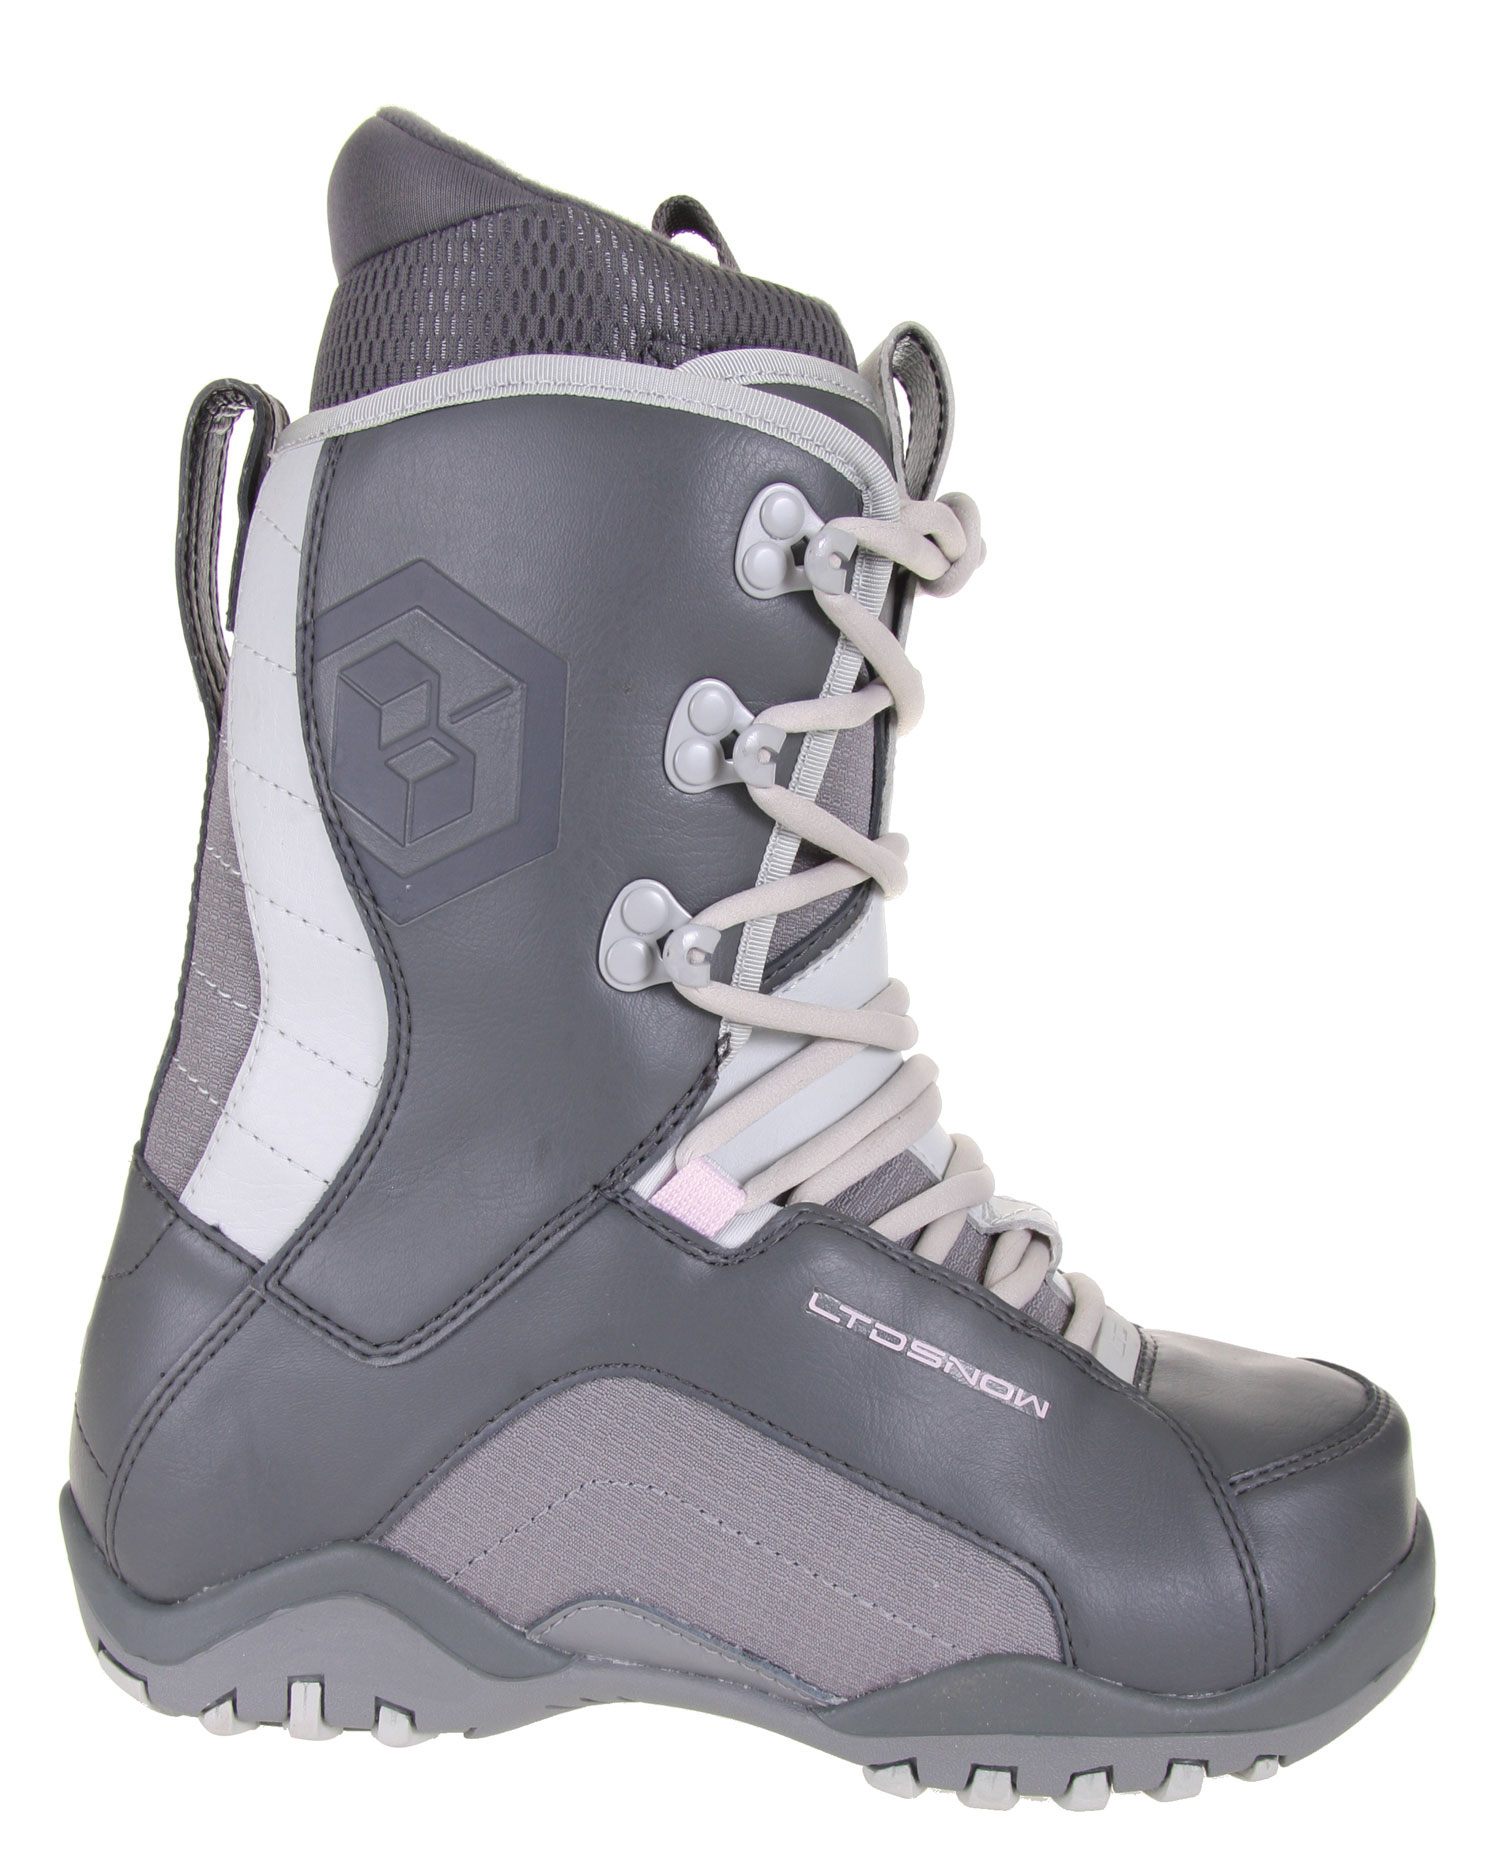 Snowboard Ride all day without sore, achy feet in the LTD Stratus snowboard boots. The lace up articulated liner has an EVA footbed that provides comfort and durability. The dual density outsole is low profile so it's lightweight yet supportive. The flex zone tongue is supple in critical areas, so the rider is supported without feeling hampered or stiff. Soft touch laces cinch up tight for a snug fit without digging in. Feel great in the LTD Stratus snowboard boots.Key Features of The LTD Stratus Women's Snowboard Boots: PL Articulated Lace Up Liner with EVA Footbed Low Profile Dual Density Outsole Tongue Gusset with Micro Injected Pull Tab Flex Zone Tongue Upgraded Materials Soft Touch Laces - $47.95